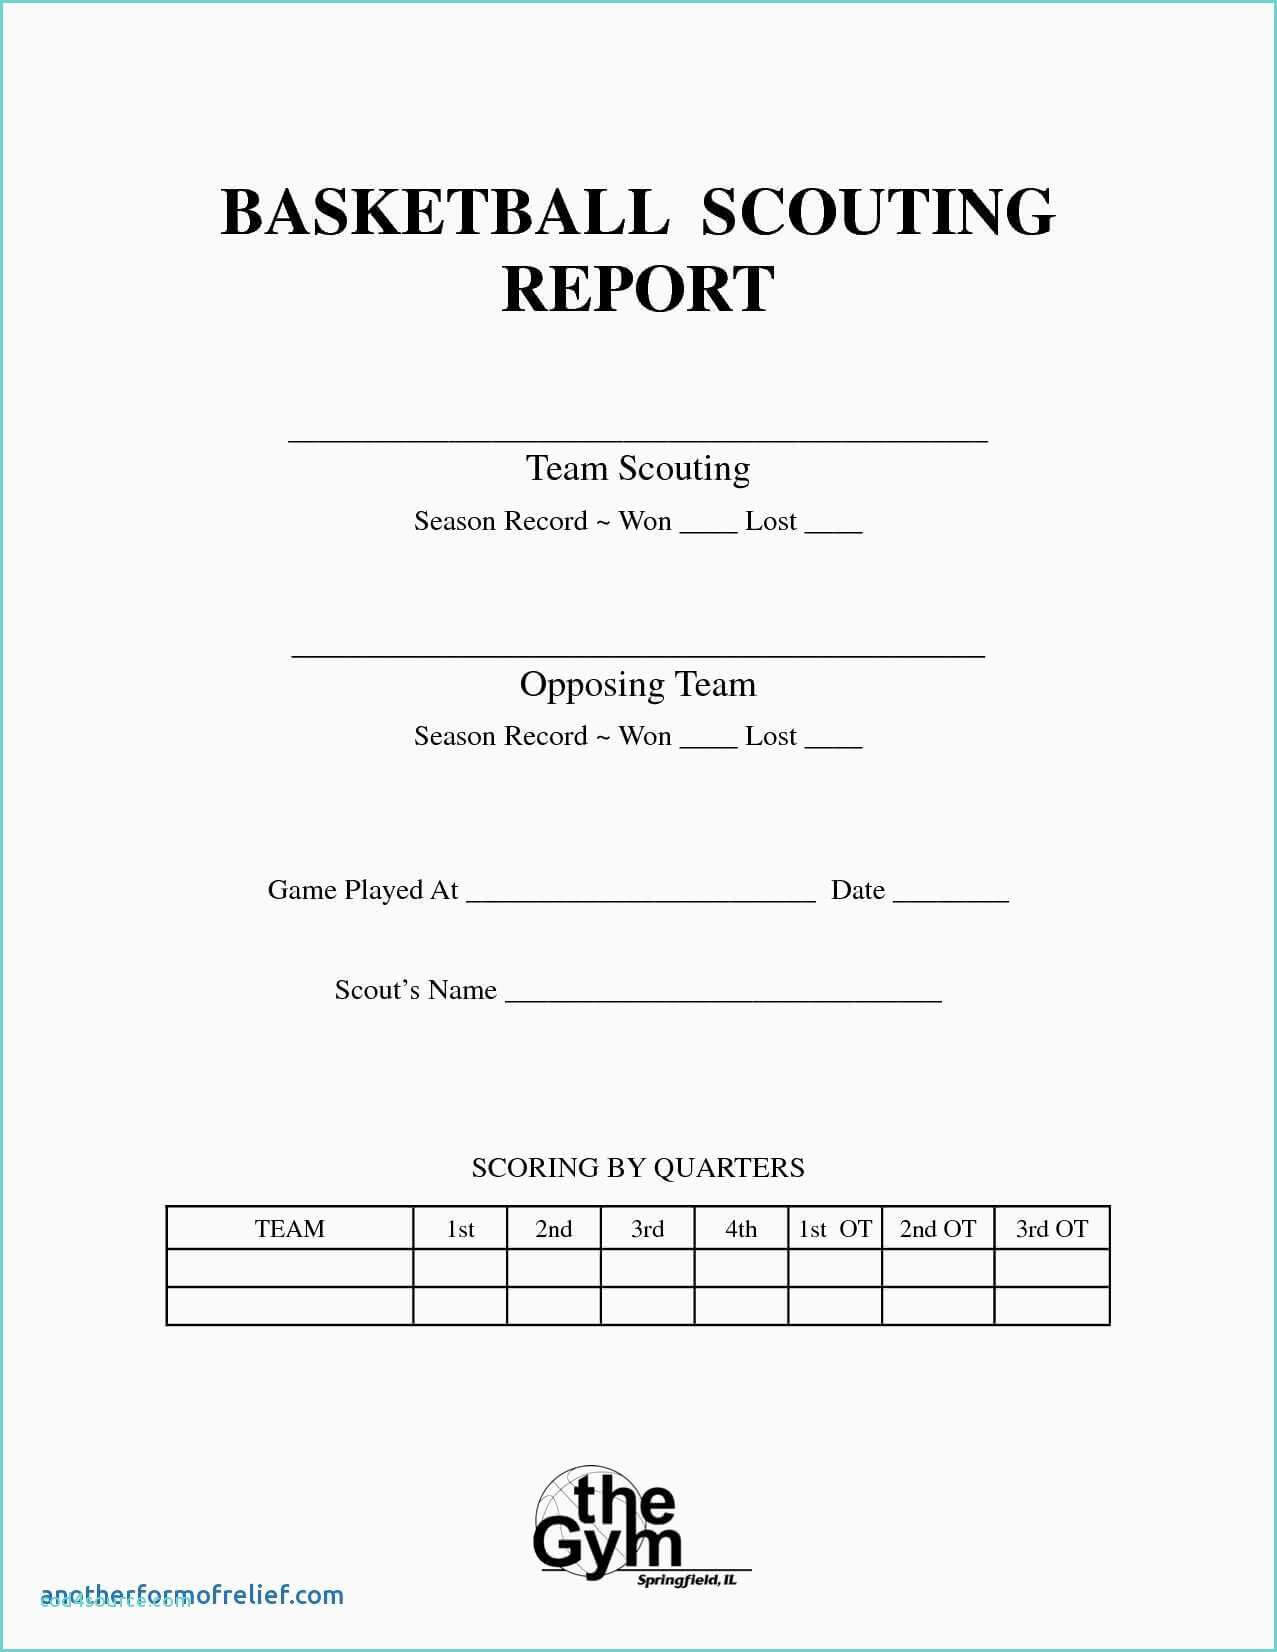 Bowling Spreadsheet And Basketball Scouting Report Template With Regard To Scouting Report Template Basketball